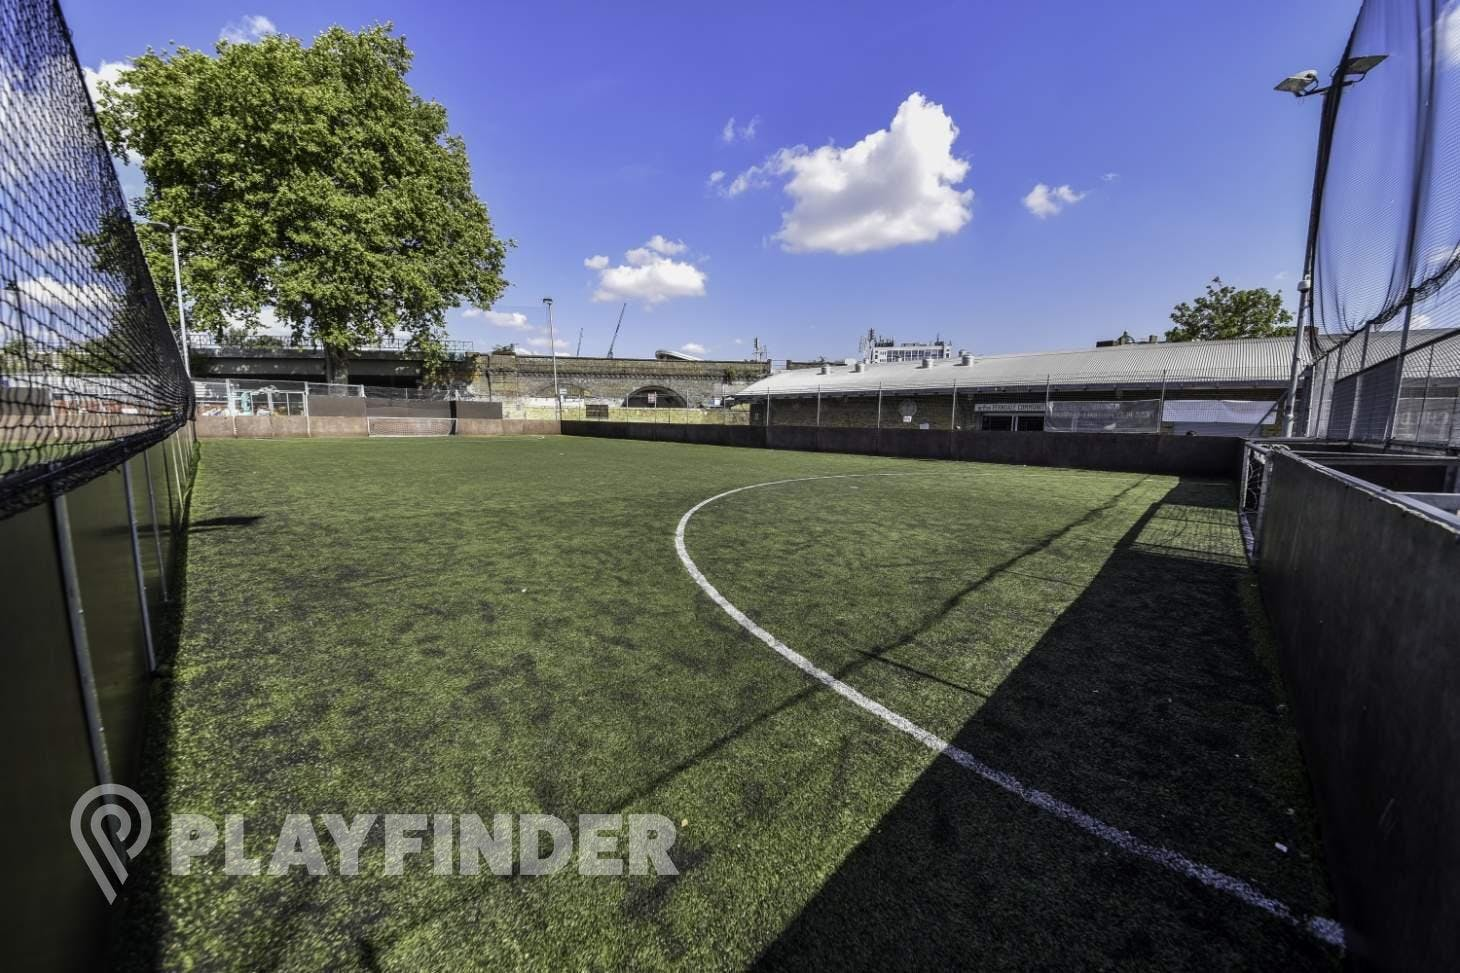 Ferndale Community Sports Centre 5 a side | 3G Astroturf football pitch